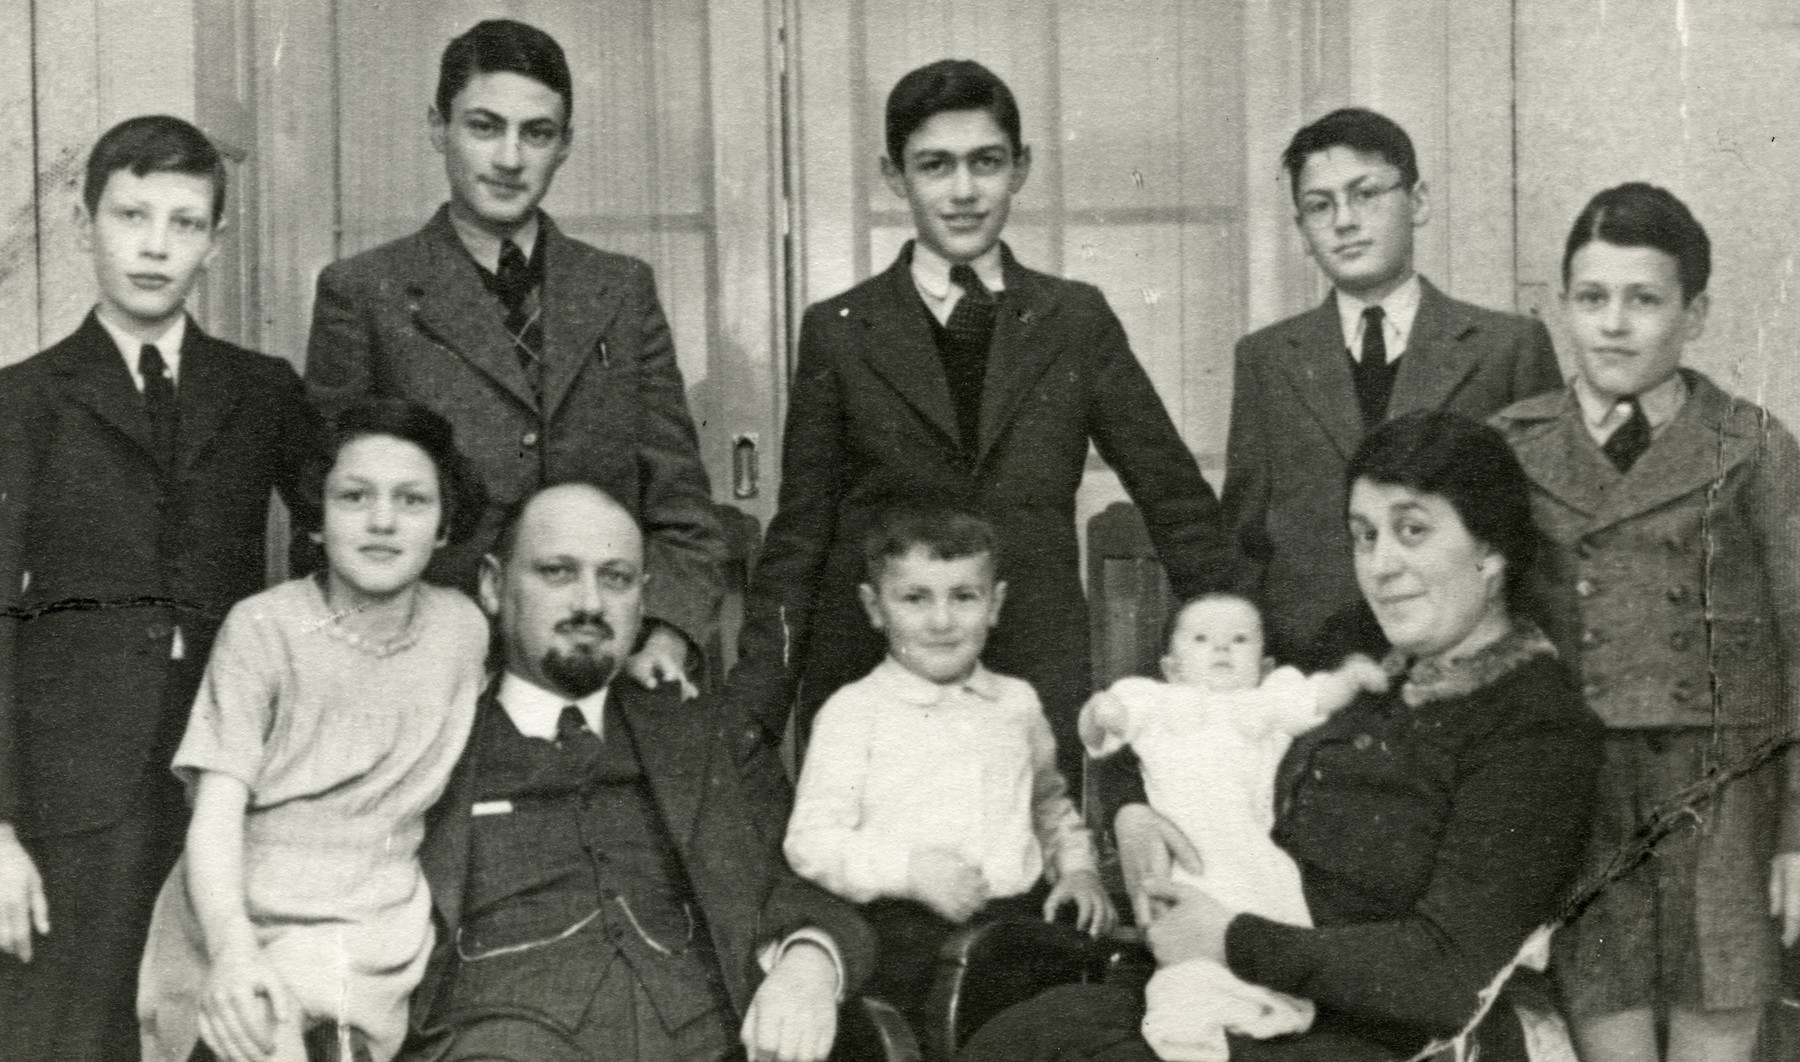 The Emanuel family gathers for  a family portrait the preceding Shmuel's bar mitzvah.    Standing from right to left:  Baruch, Yona, Shlomo, Elchanan, and Shmuel.  Sitting:  Chana holding Bitya, Shalom, Mordechai, and Bella.